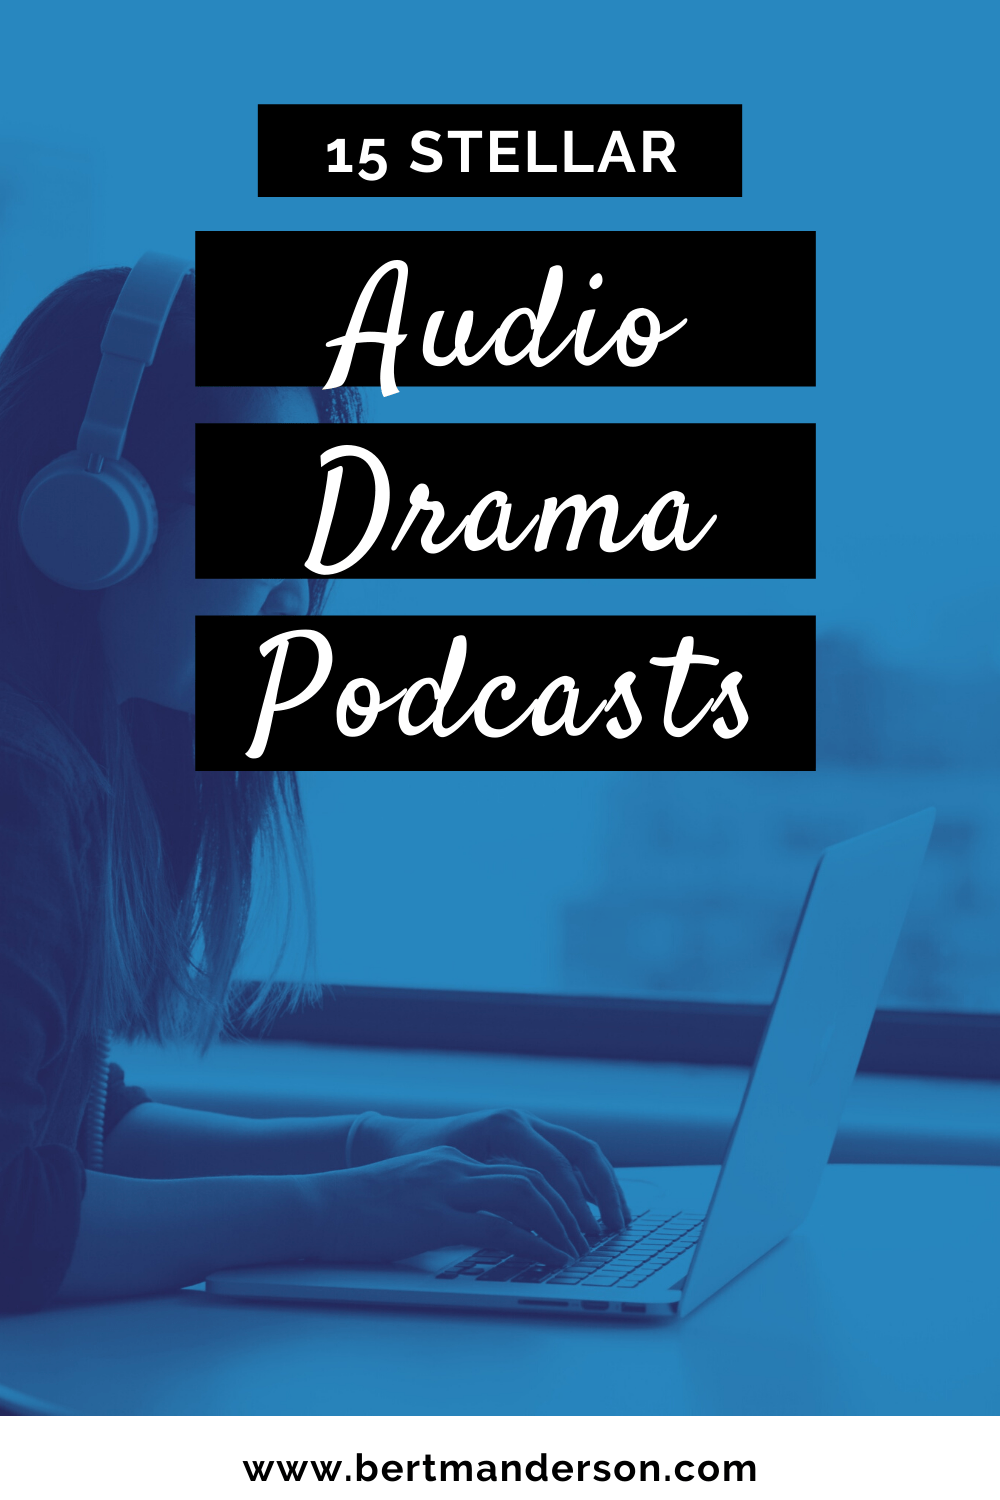 15 stellar audio drama podcasts to get you addicted to audio drama